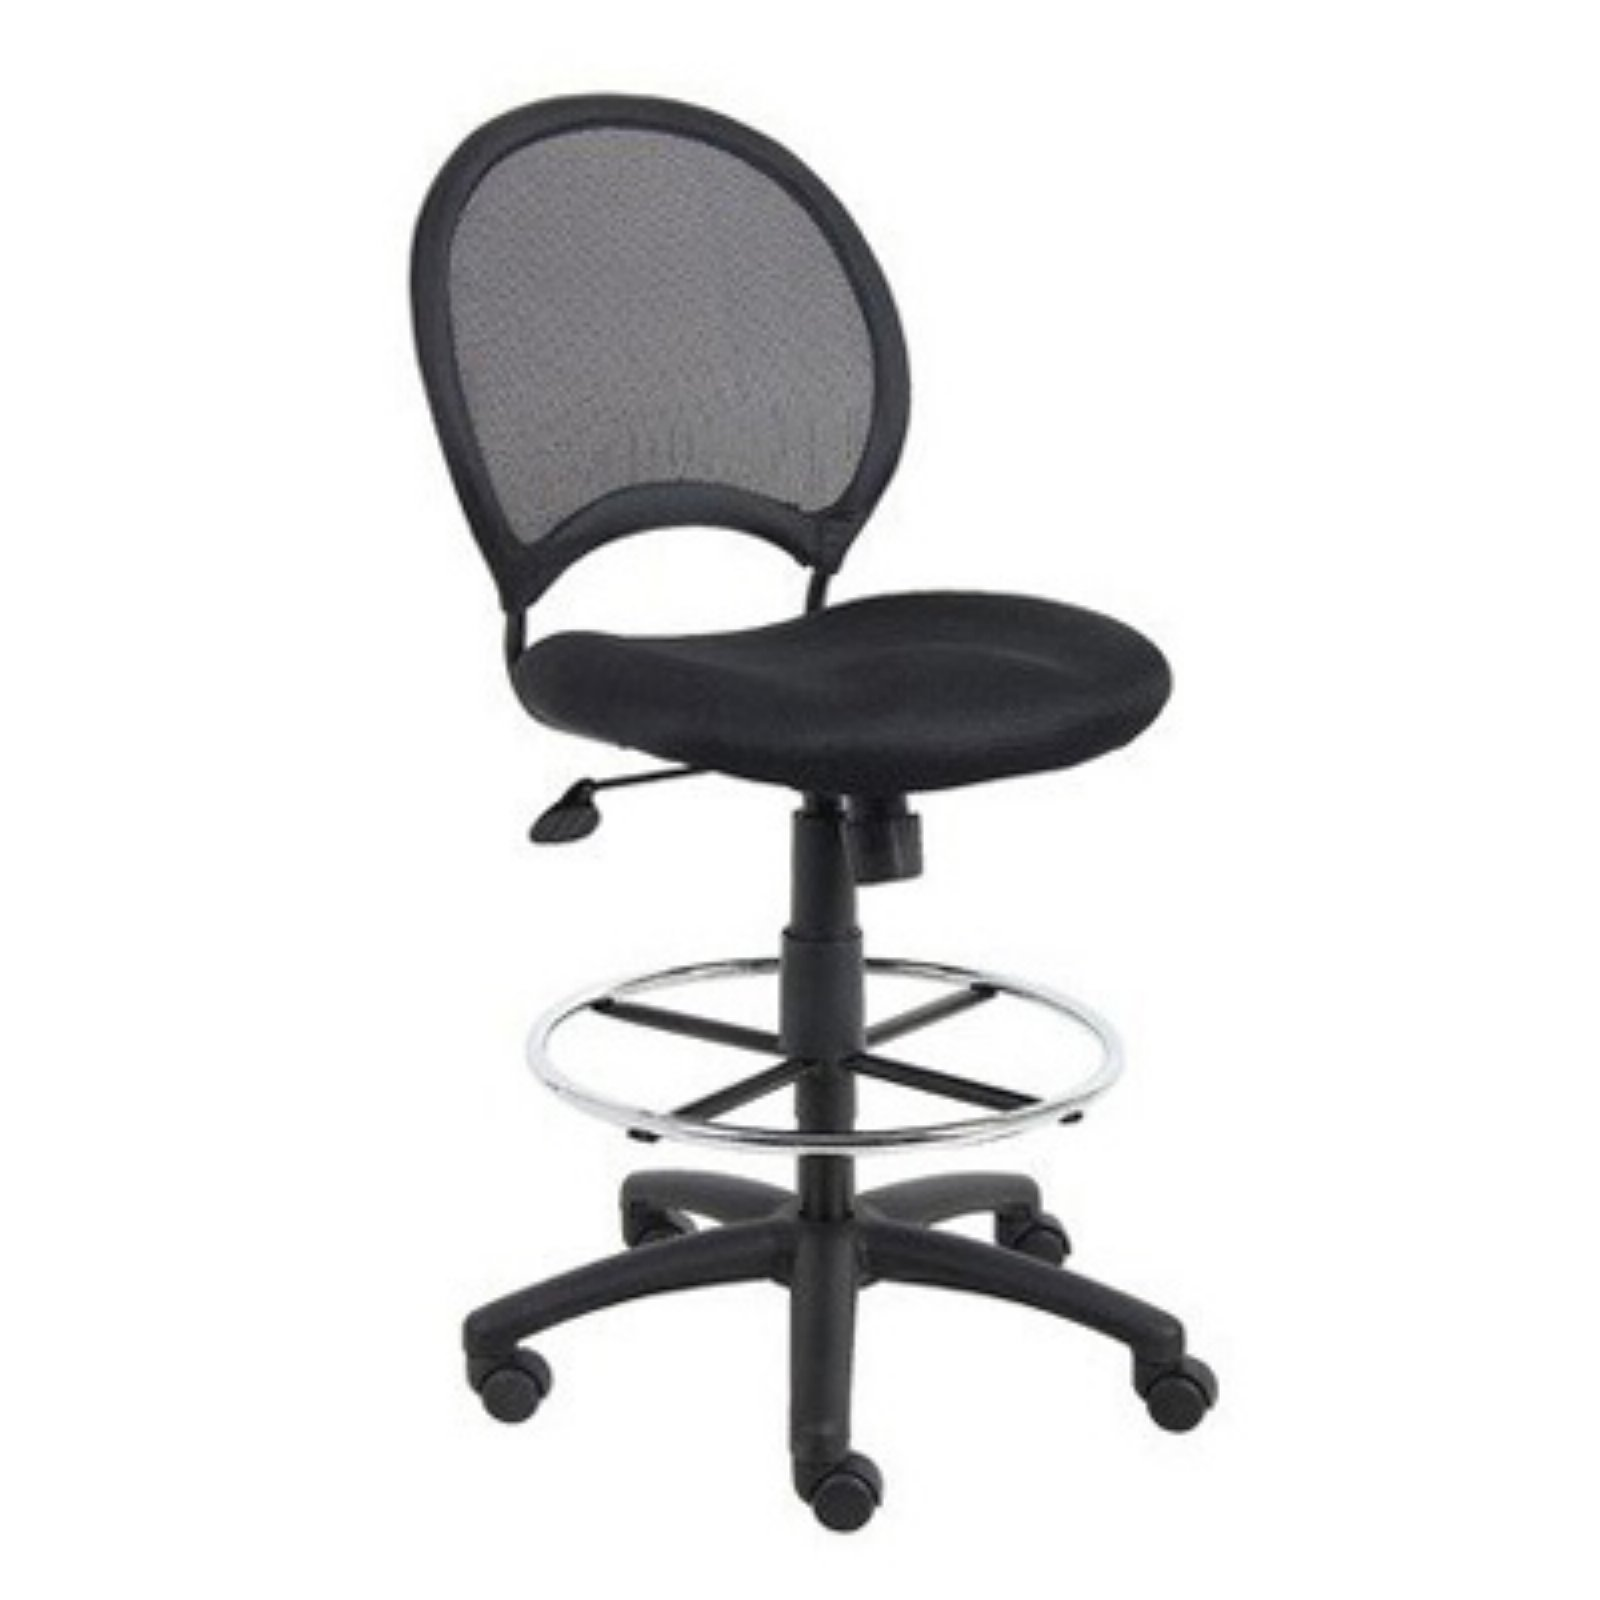 Miraculous Boss B16217 Mesh Drafting Stool With Loop Arms Black Bralicious Painted Fabric Chair Ideas Braliciousco